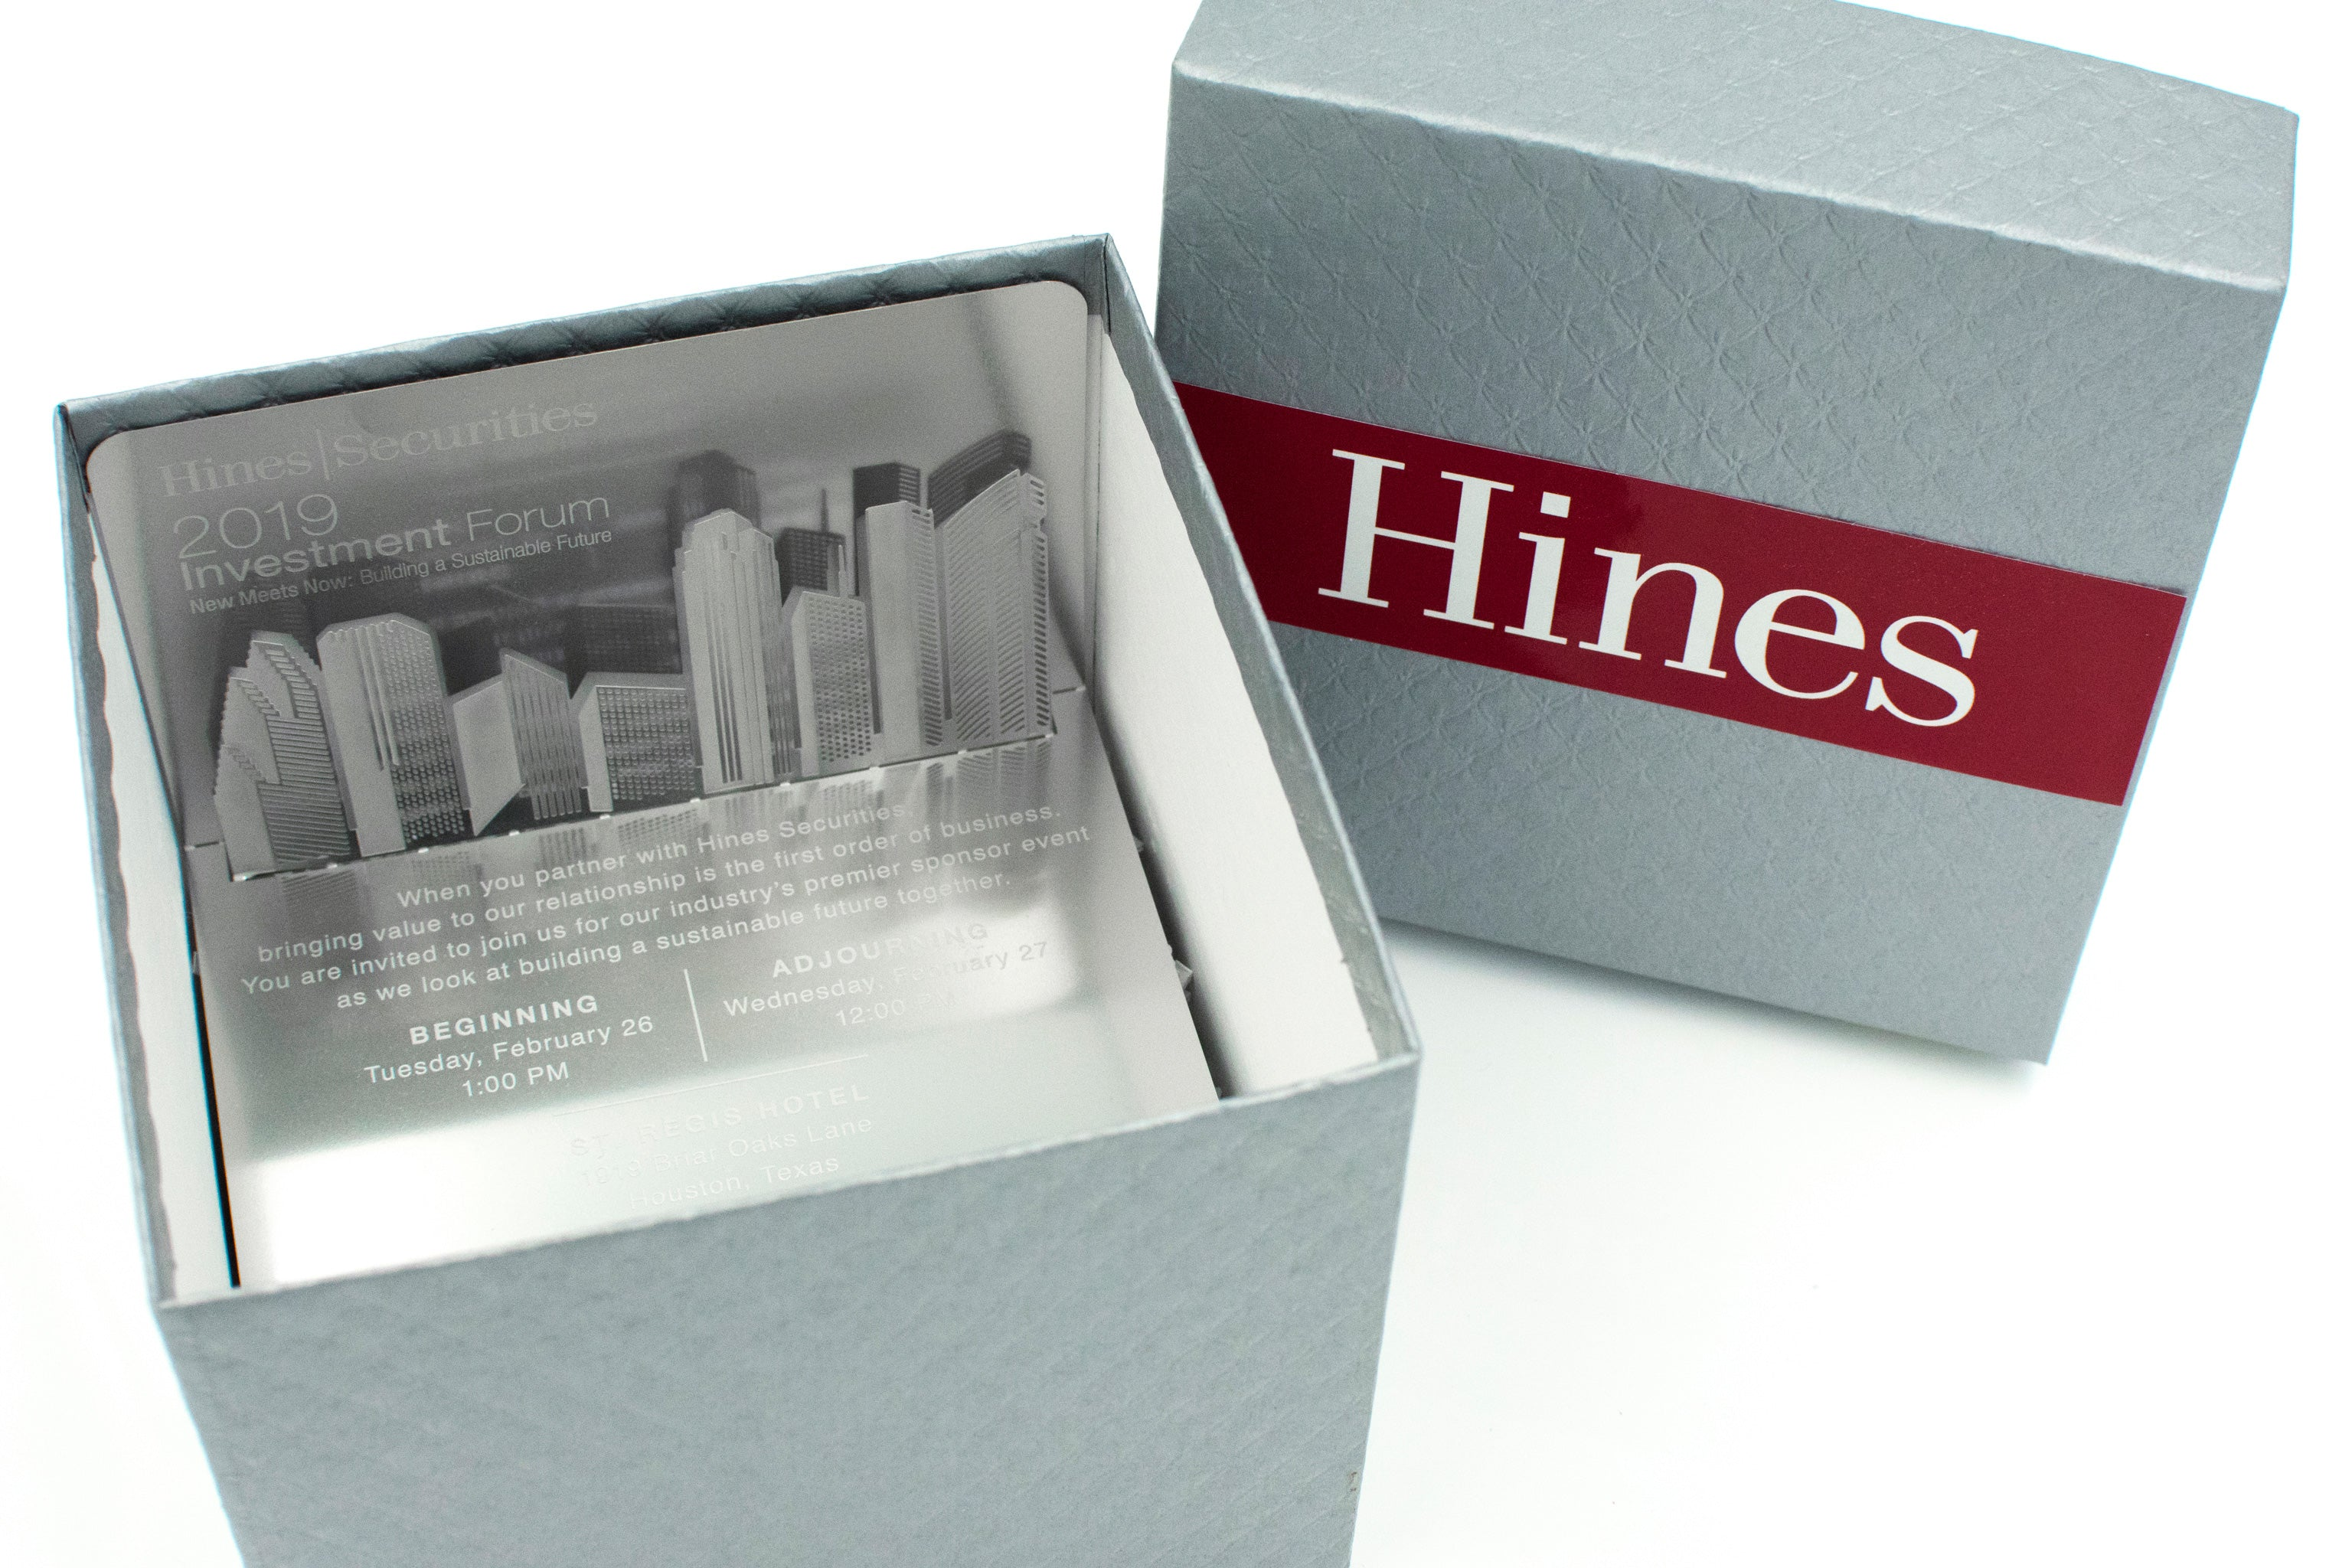 Hines Metal Invitation In Box Houston Buildings in Box